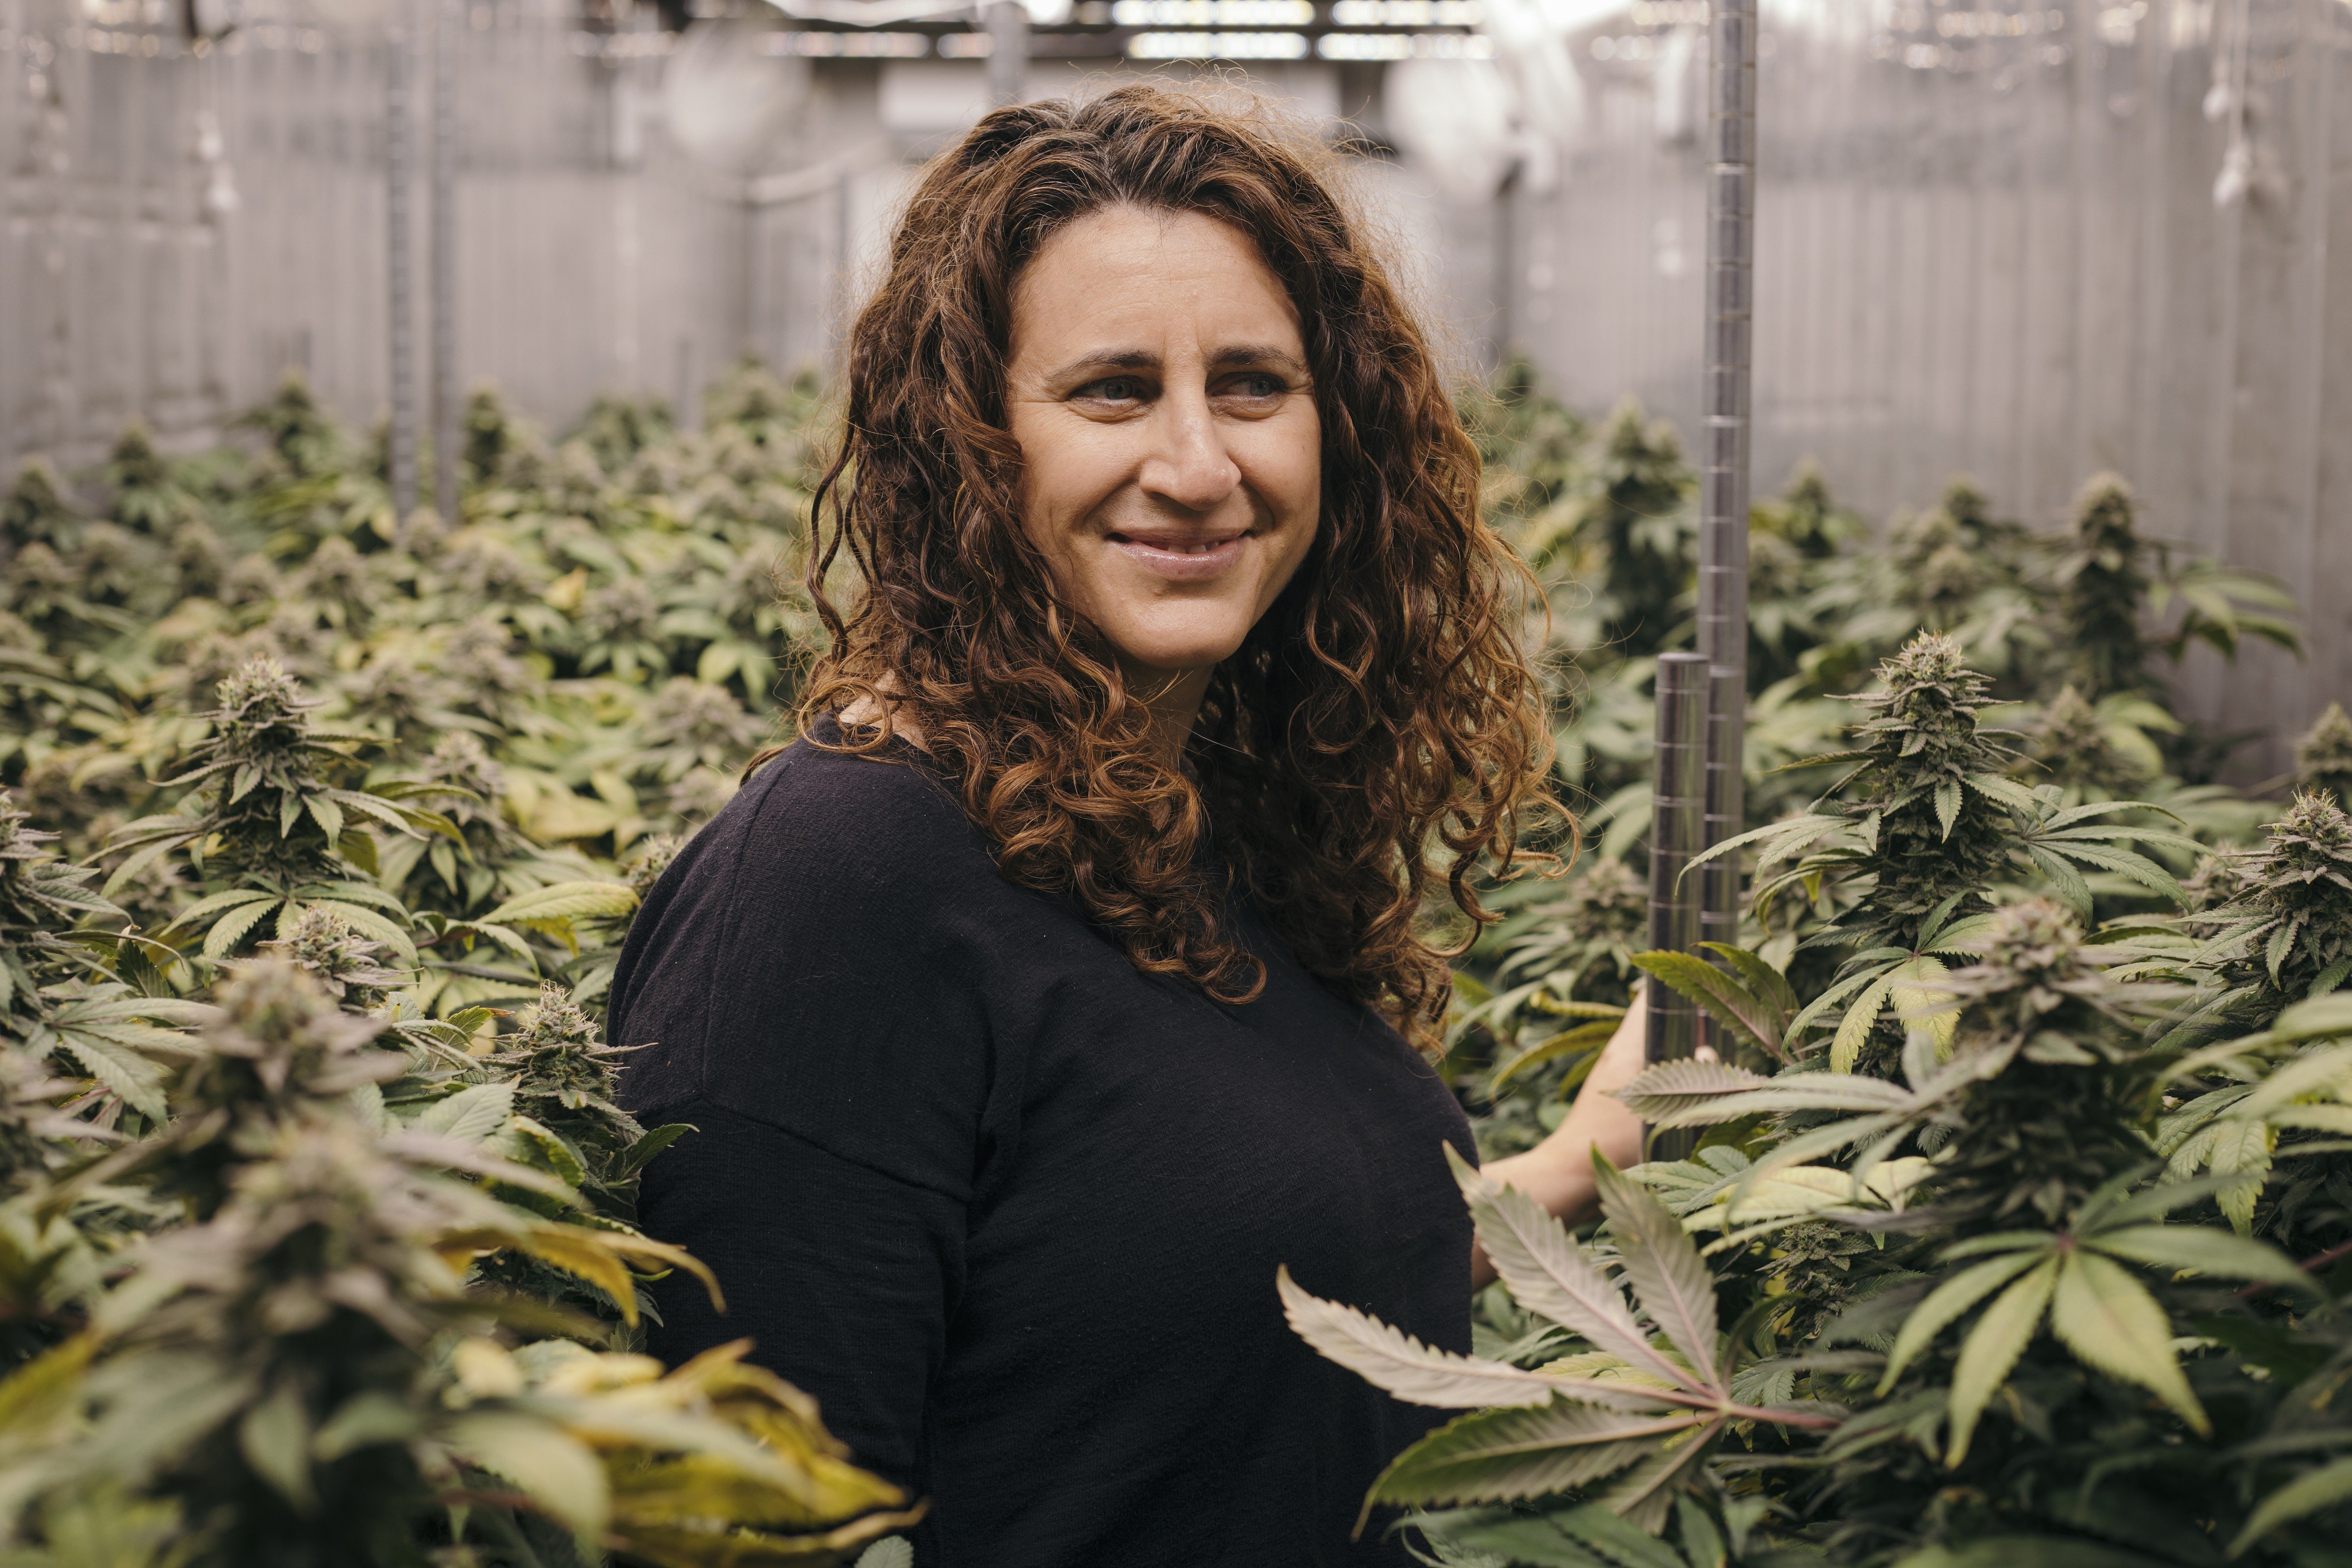 Amy Margolis Makes It Her Business to Assist Female Weed Entrepreneurs